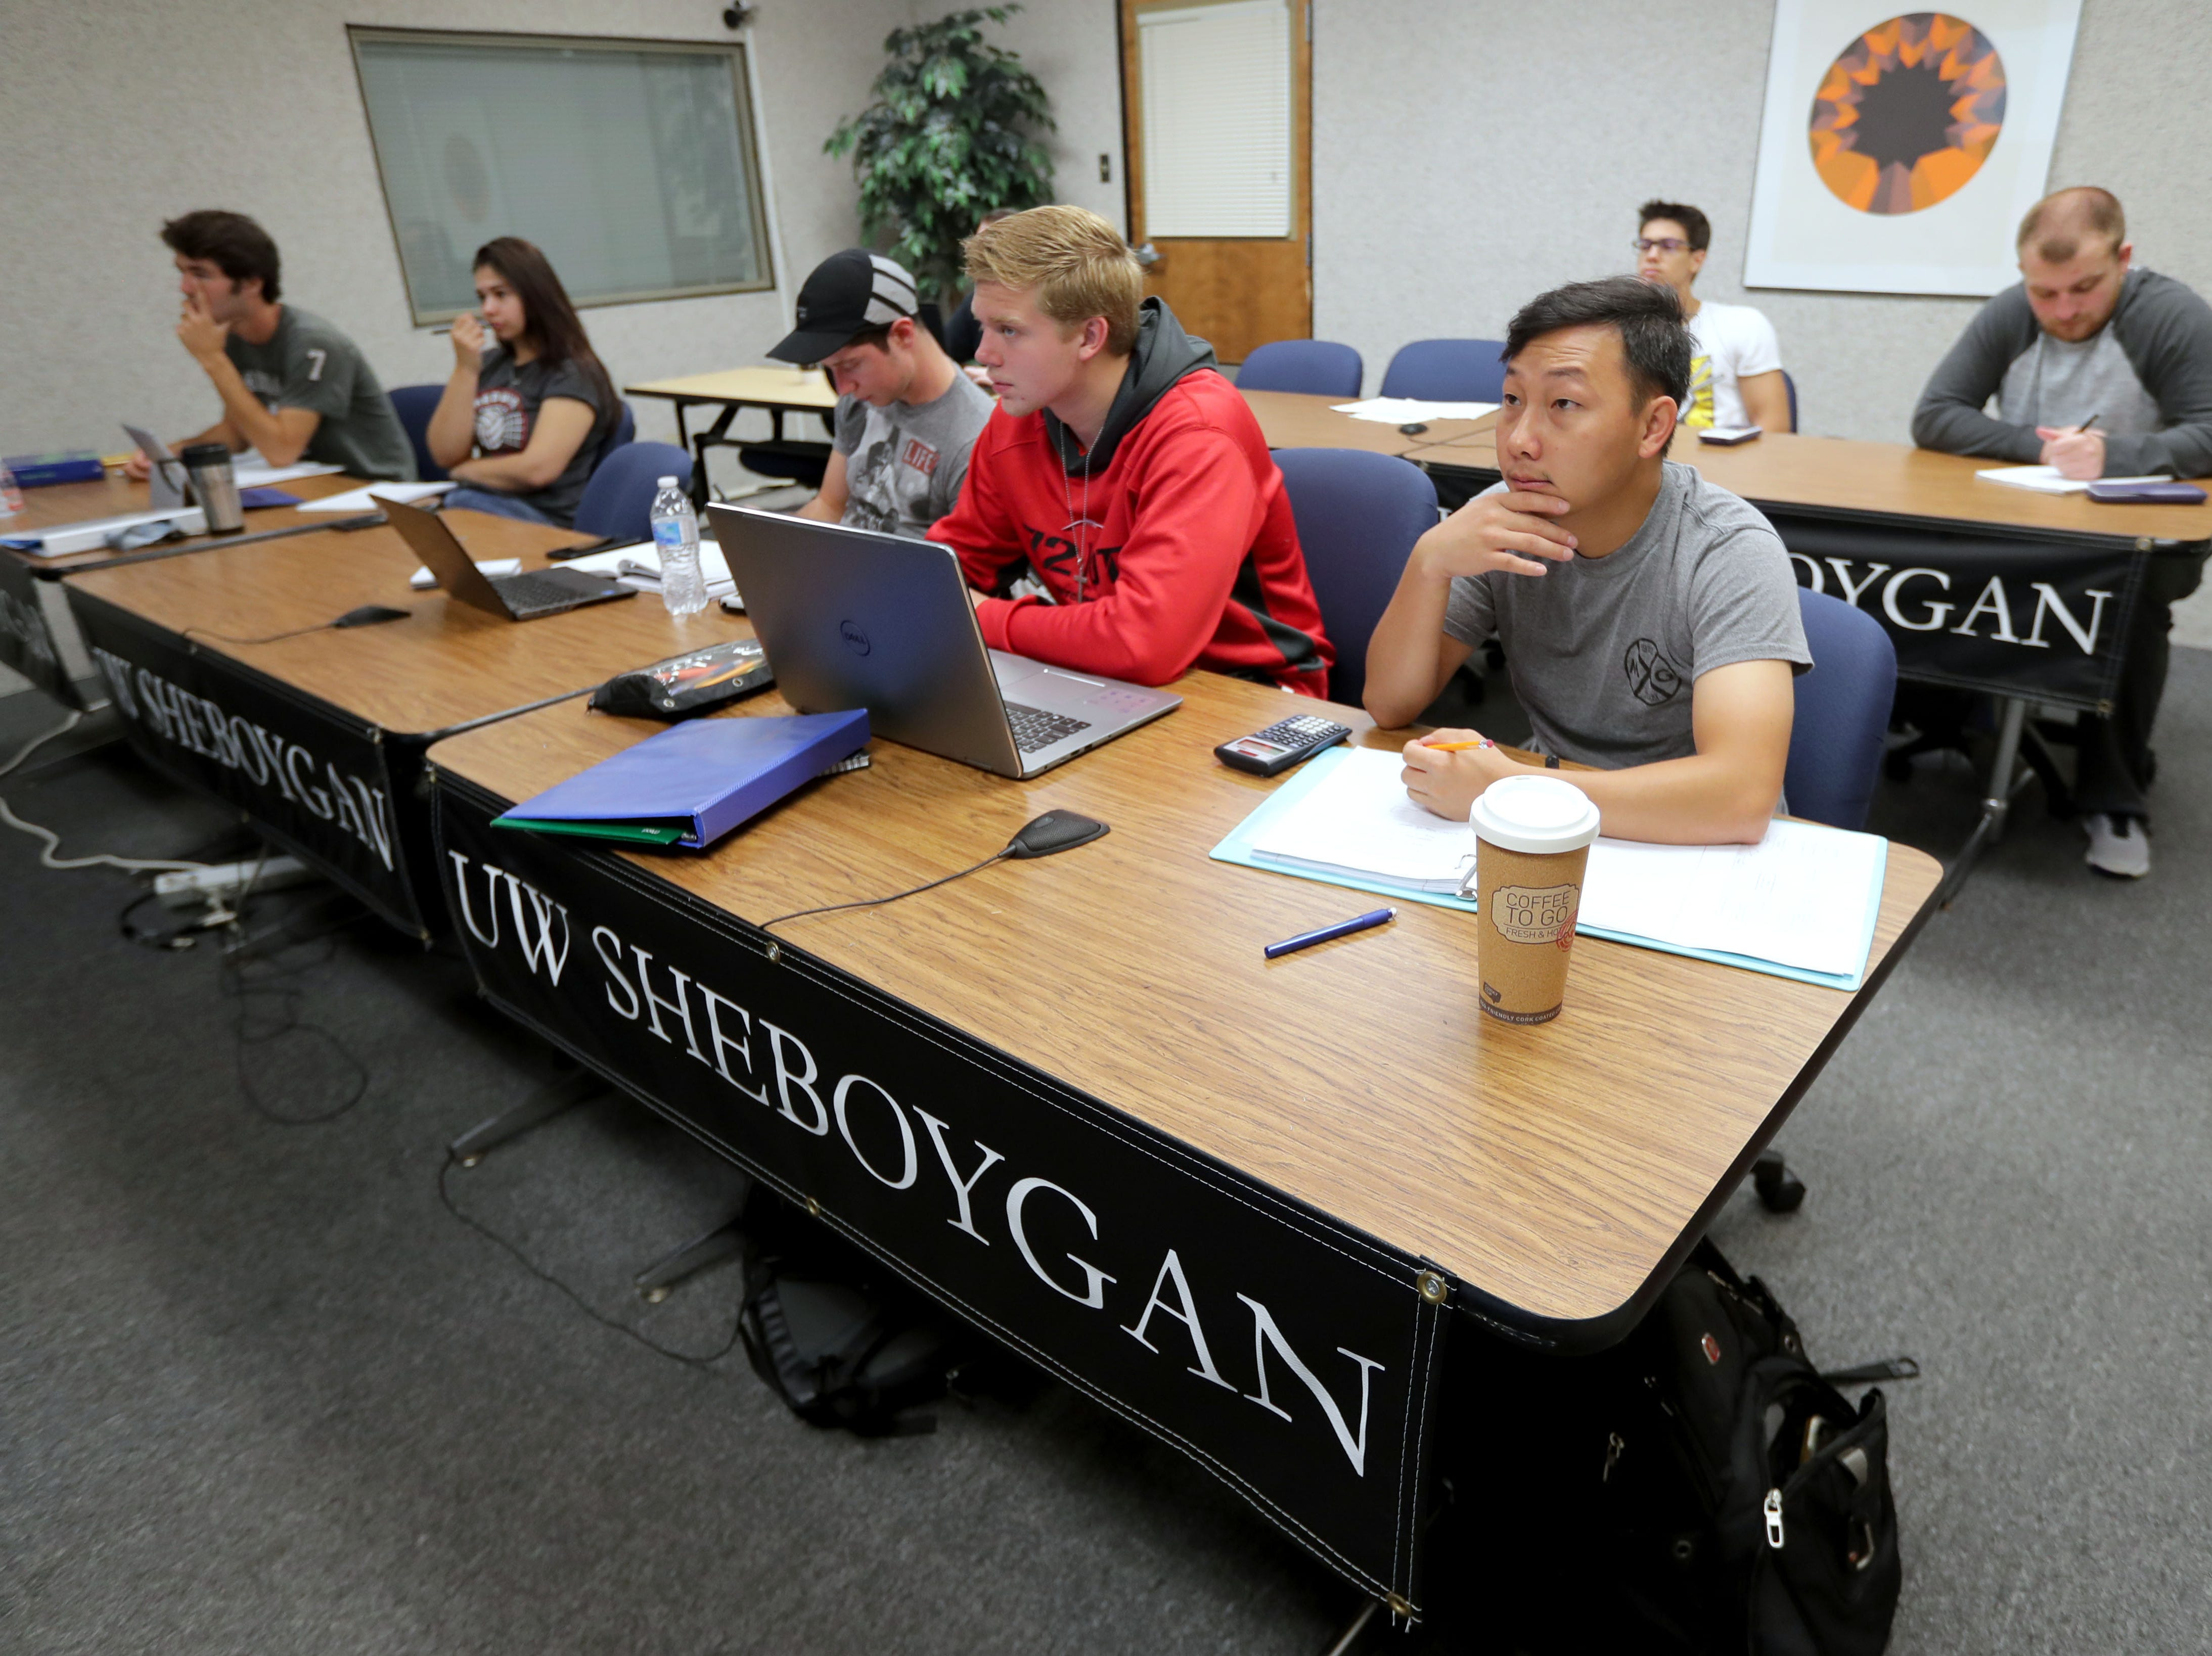 University of Wisconsin-Green Bay, Sheboygan Campus students Jacob Eernisse (front right table from left), a freshman from Oostburg; Mitchell Ver Velde, a sophomore from Oostburg; and Xiong Yang, a sophomore from Sheboygan, participate in a physics class  being taught by Thomas Hall remotely via a video conference from the University of Wisconsin-Whitewater at Rock County.